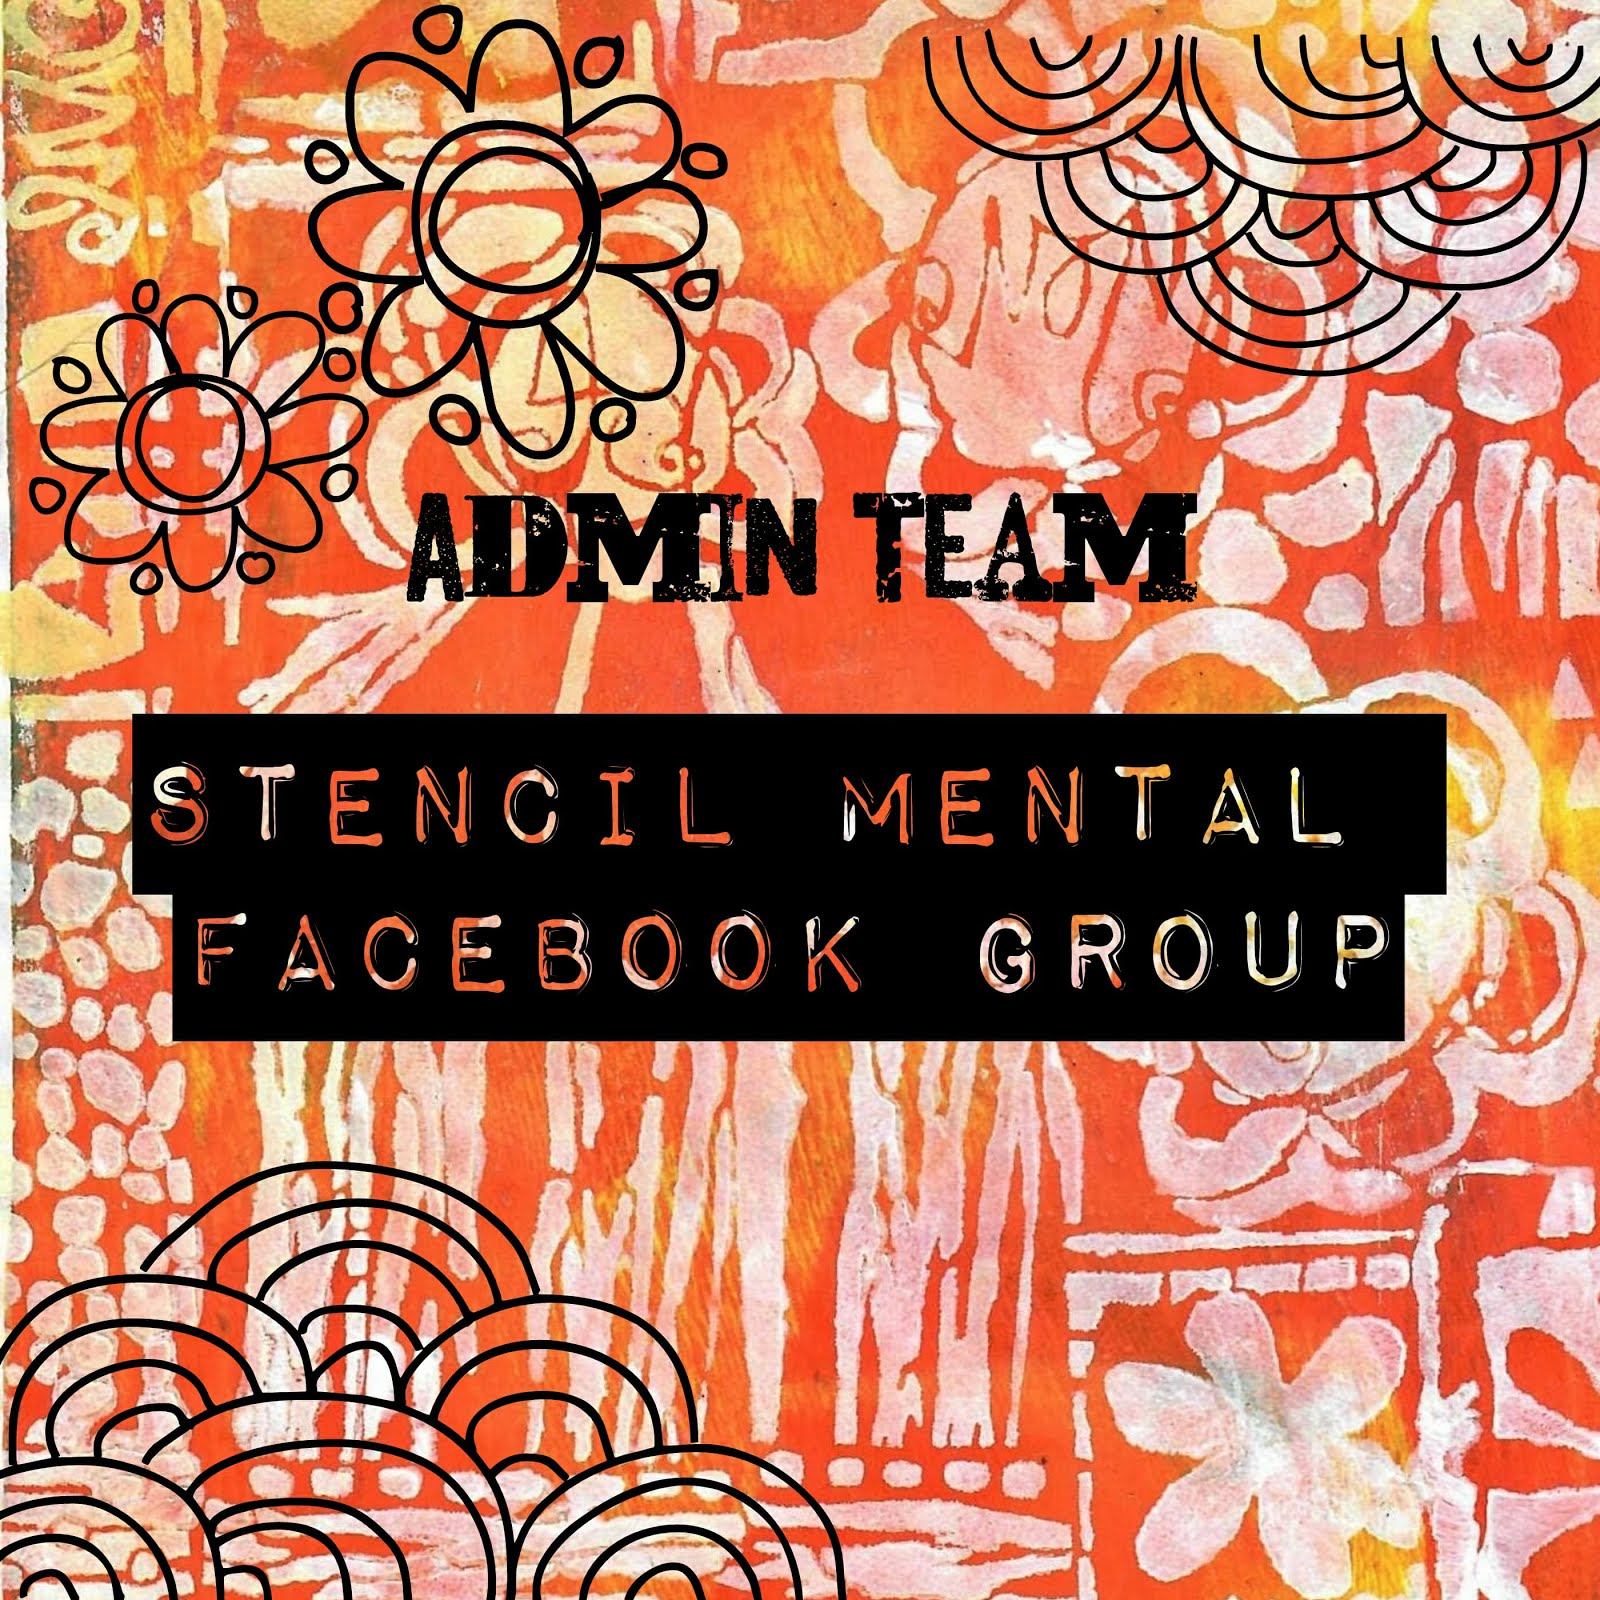 Stencil Mental Facebook Group